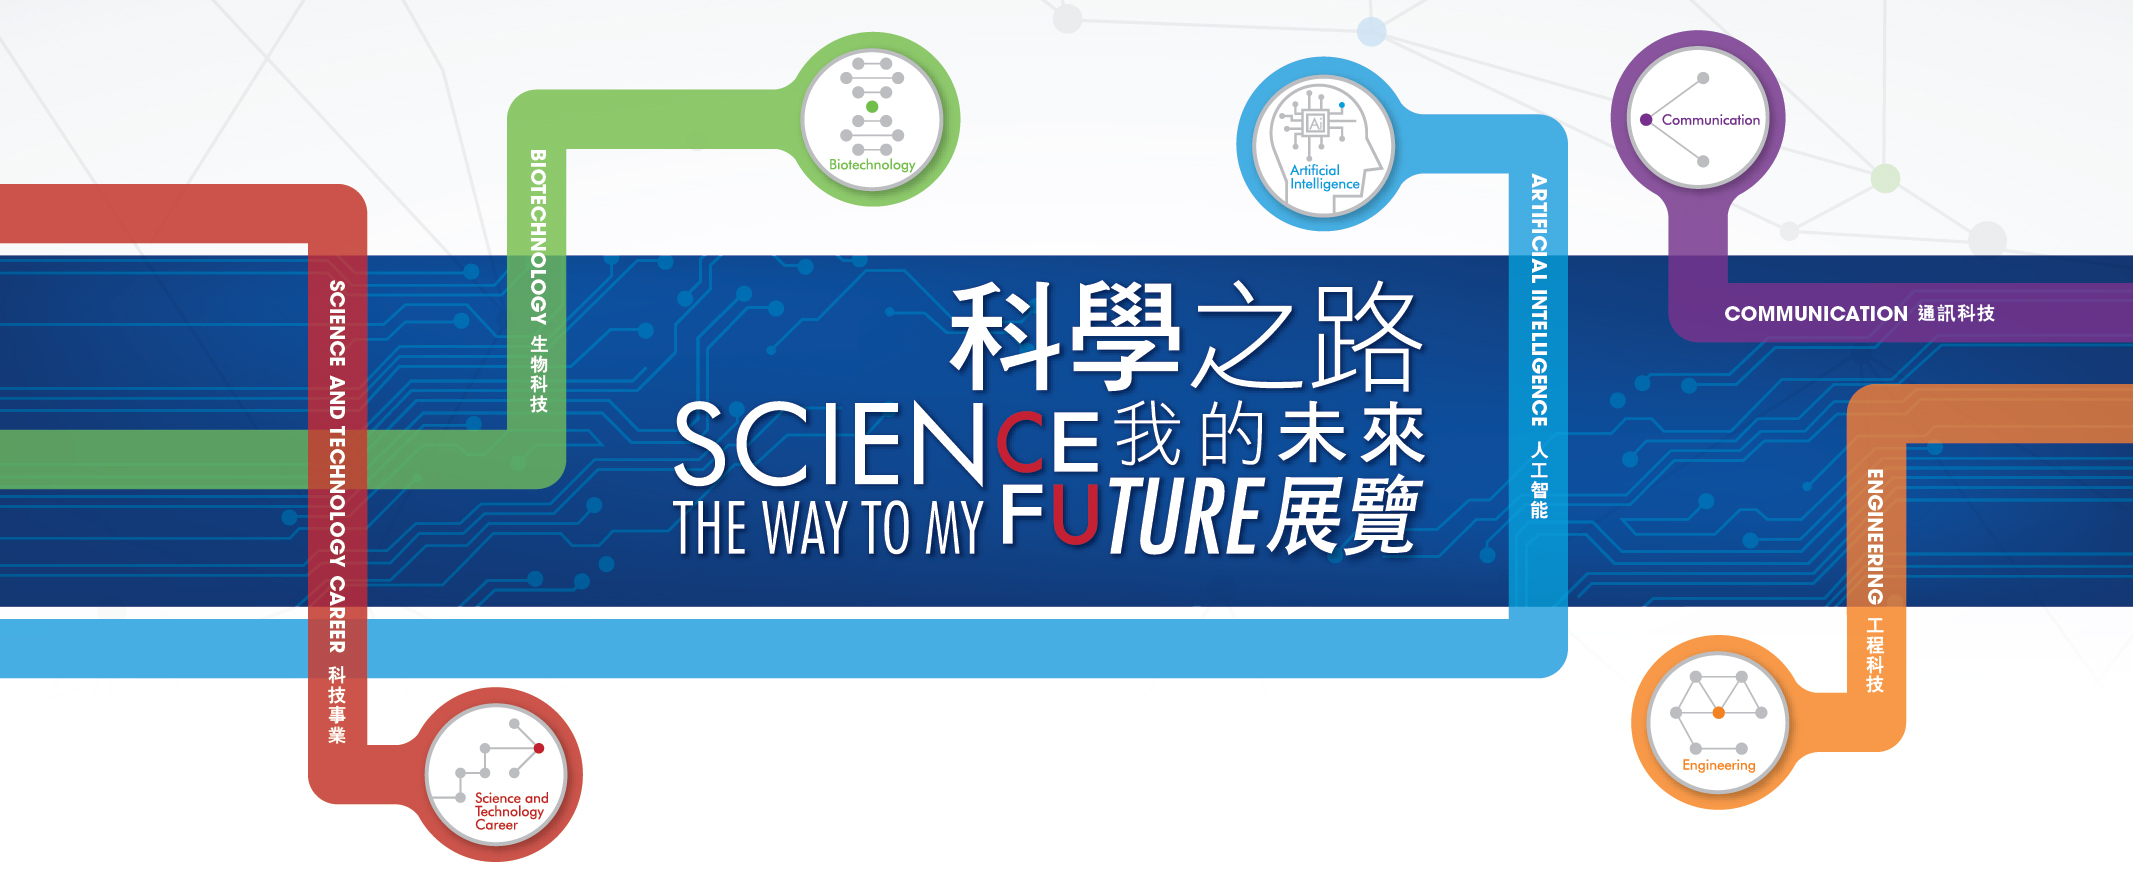 Science The Way to My Future